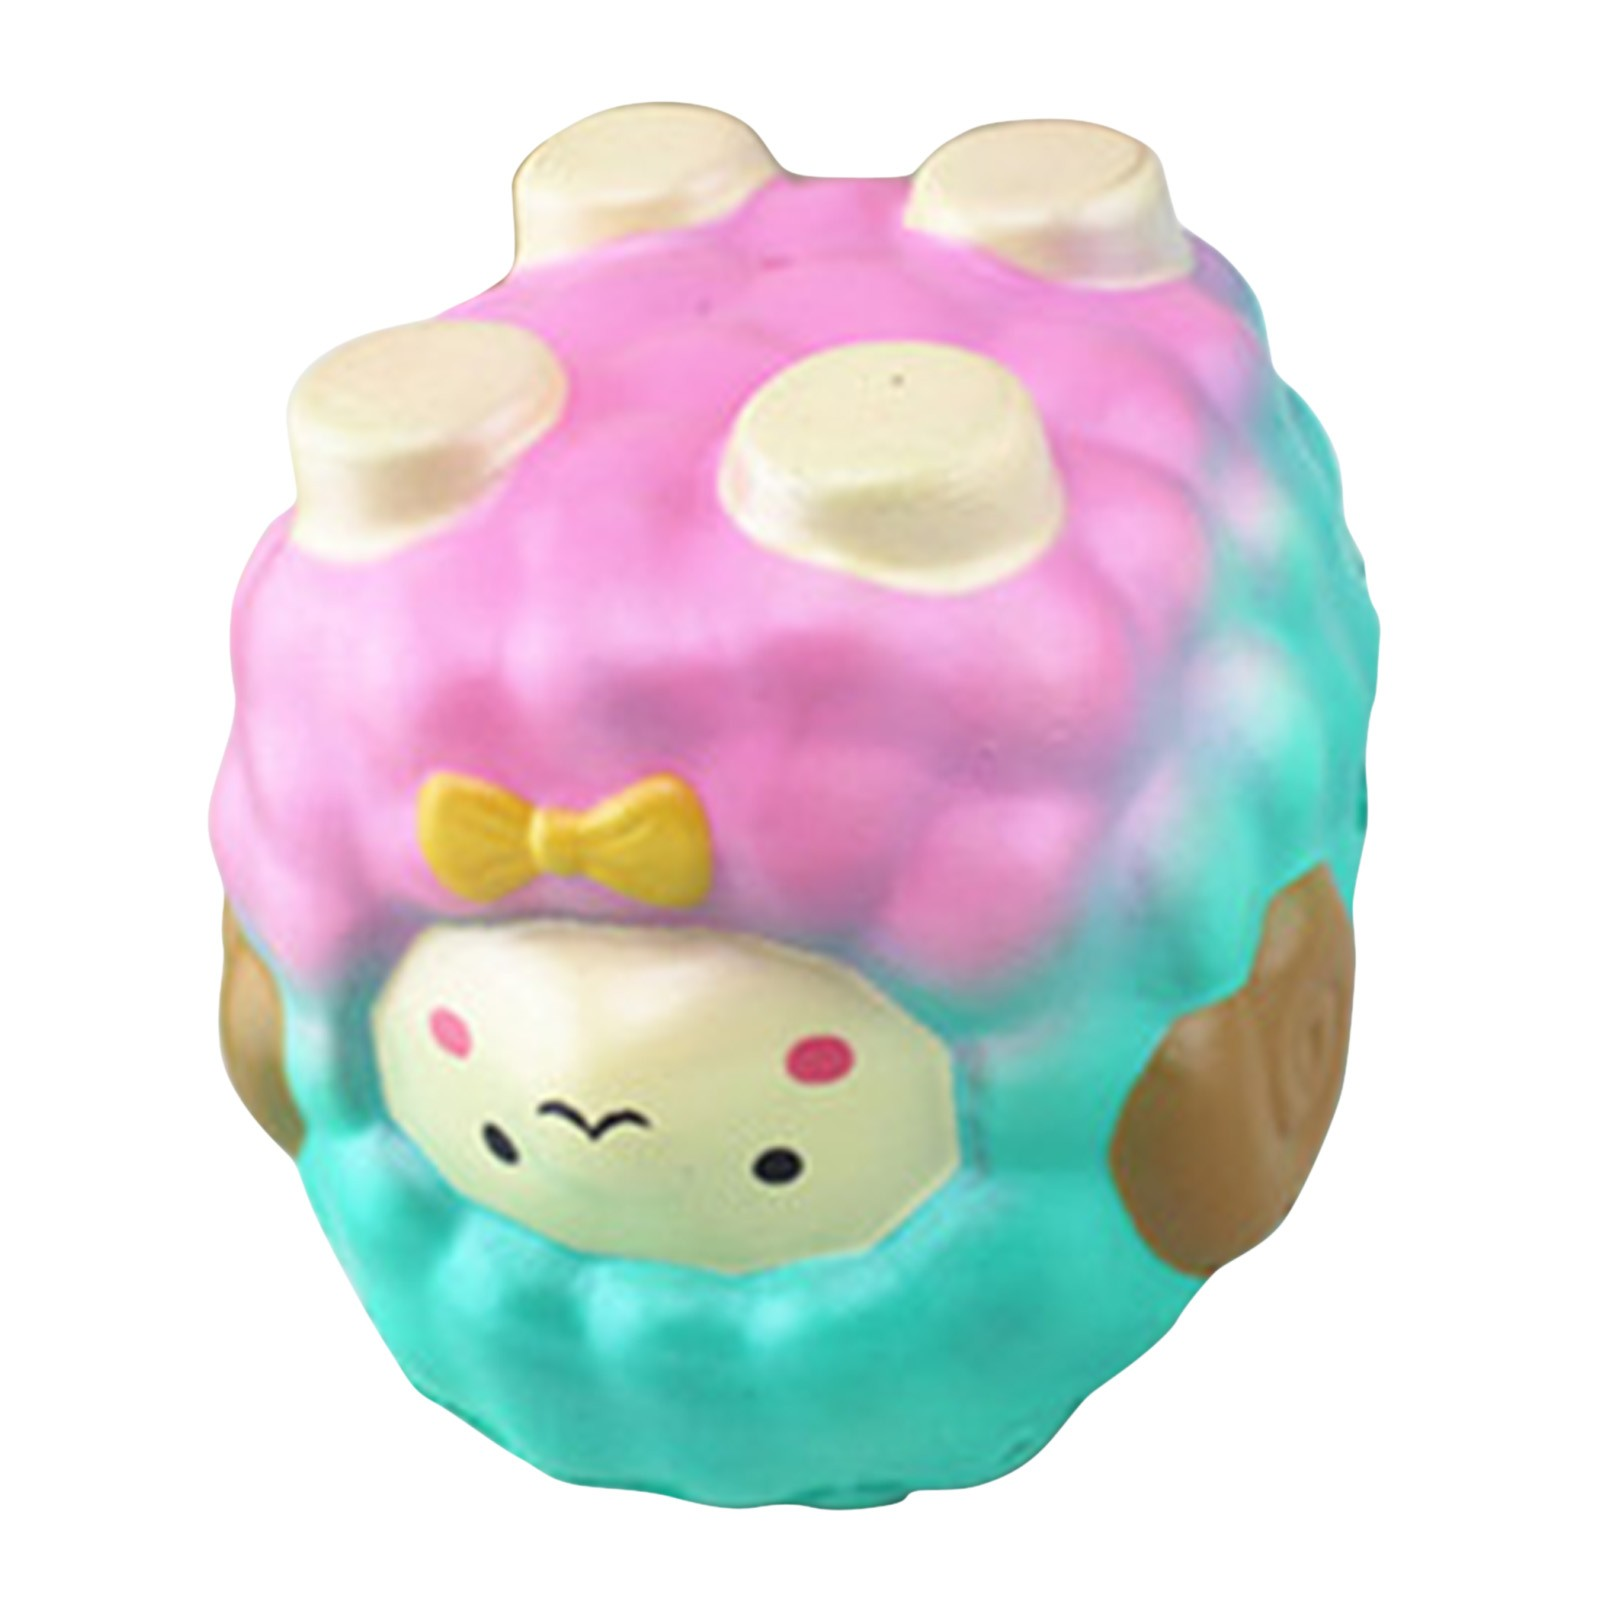 Adorable Llamas Alpacas Slow Rising Squeezed Toys Fruit Scented Squeezed Stress Relief Toys Decompression Toy For Children img4